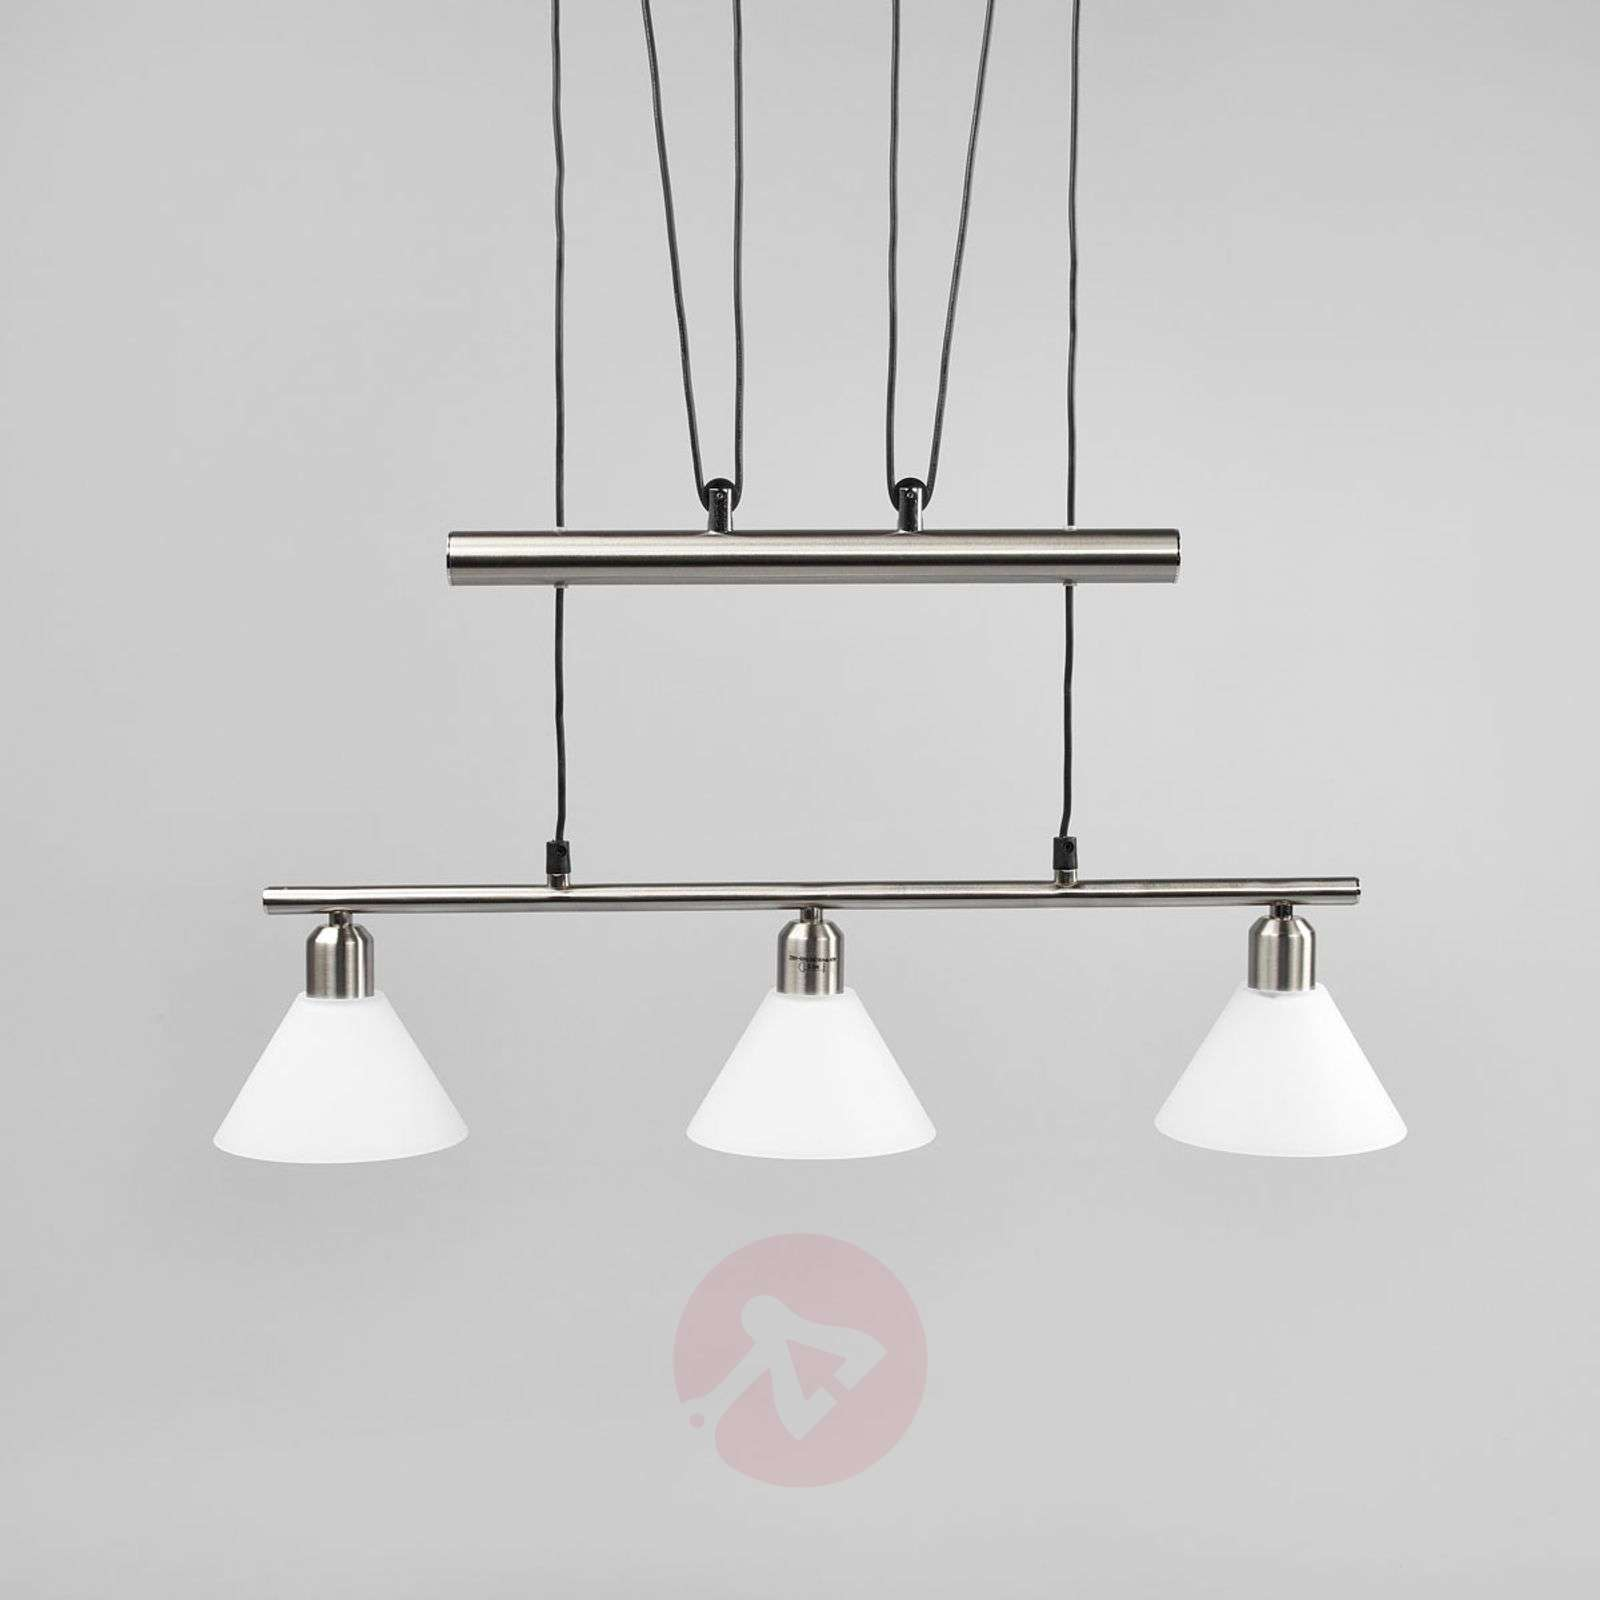 collection lighting designed first pin our light pendant description is